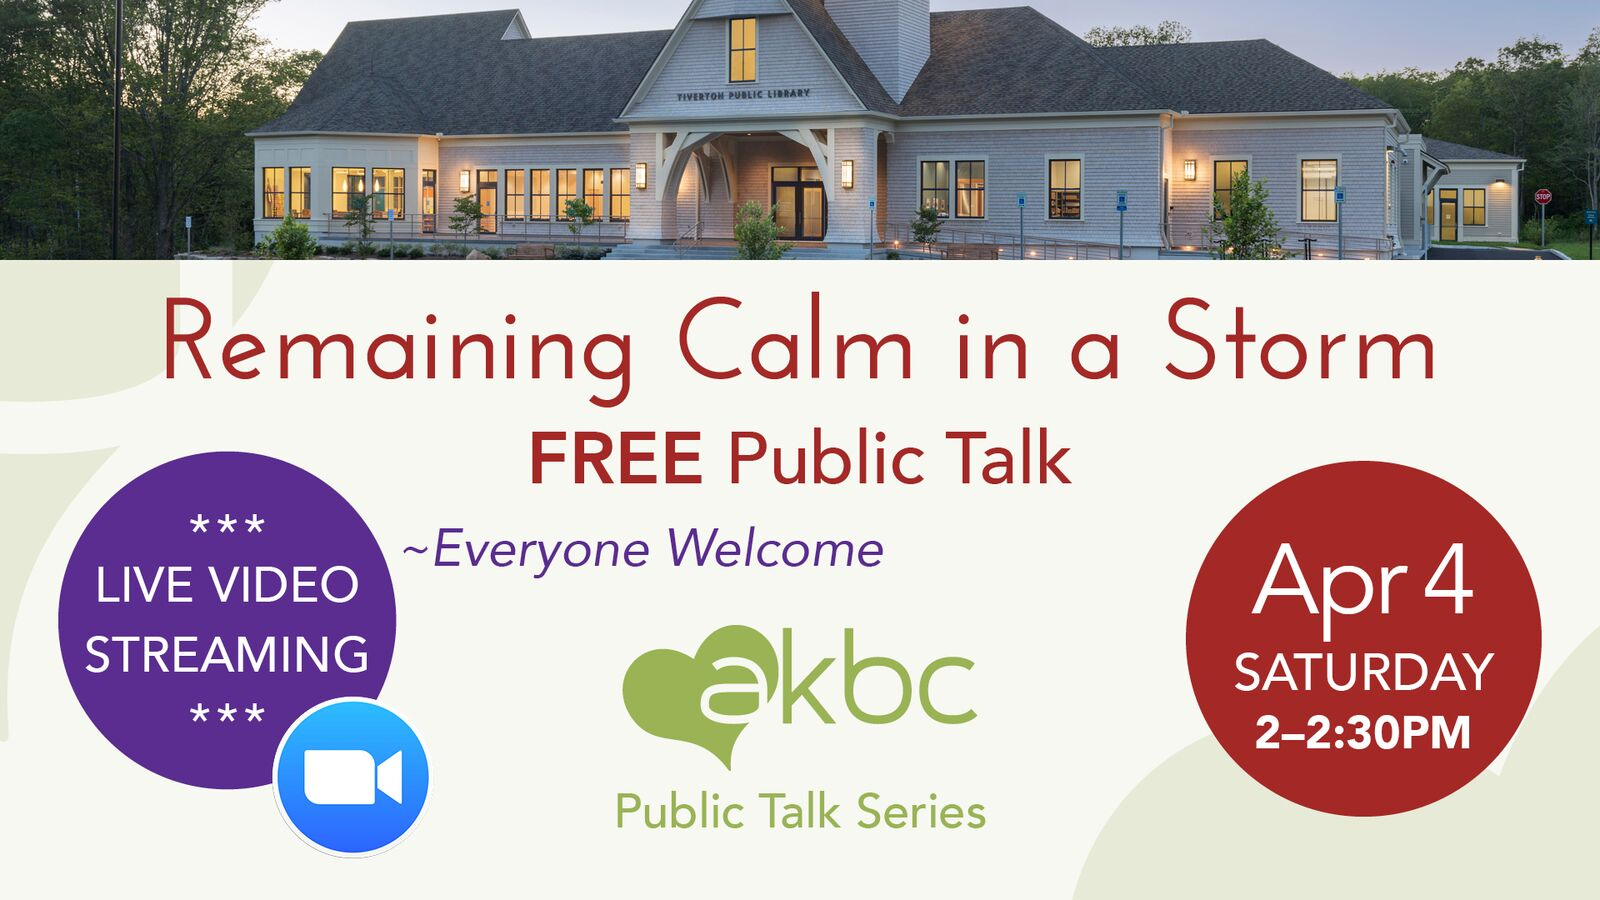 VIRTUAL PROGRAM: Remaining Calm in a Storm: Overcoming Stress with Meditation